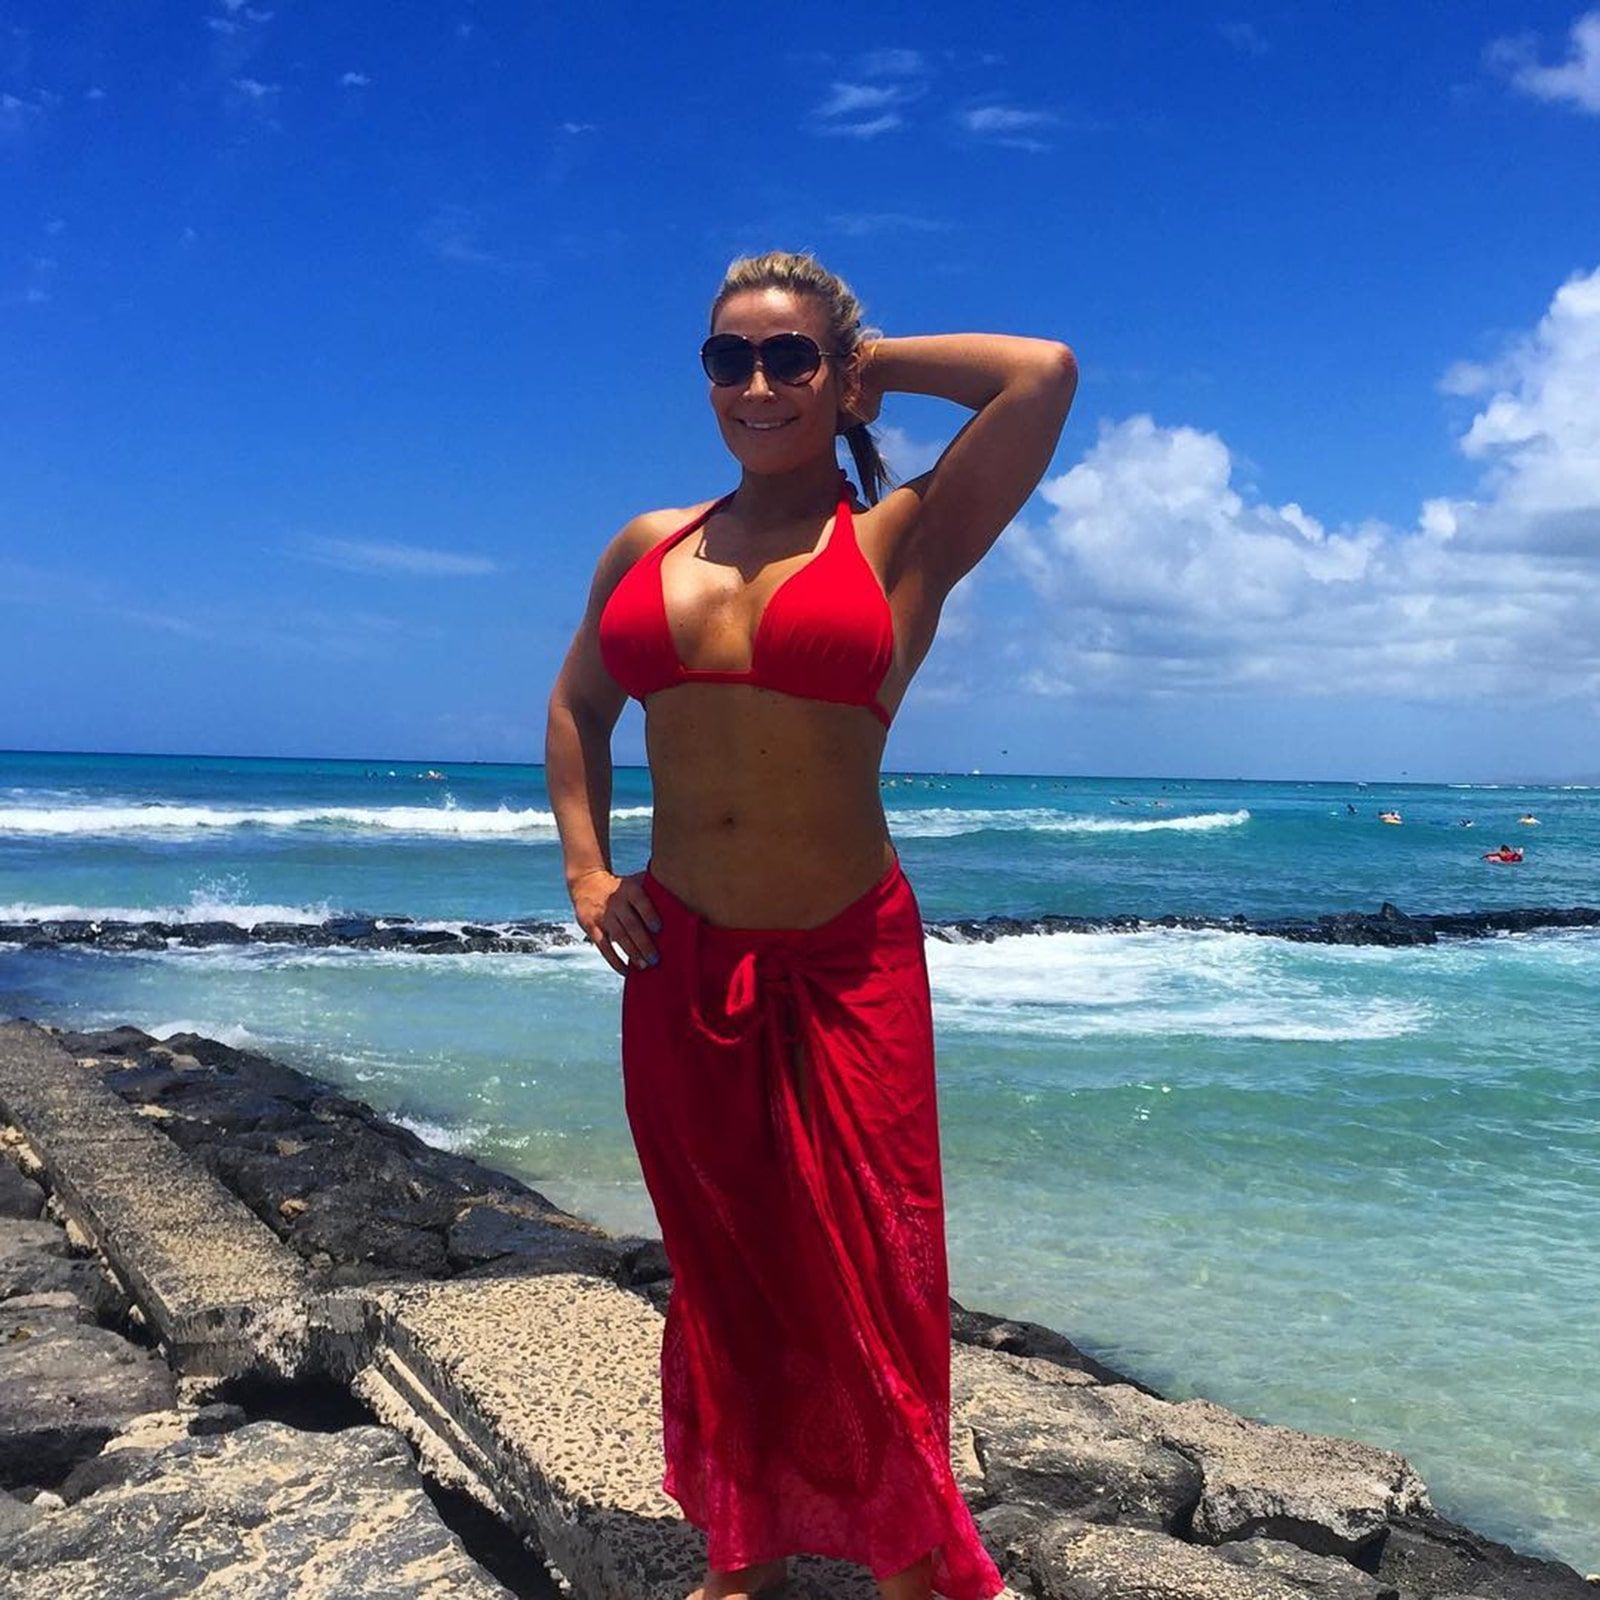 Natalya Sexy Boobs Pictures in Red Bikini